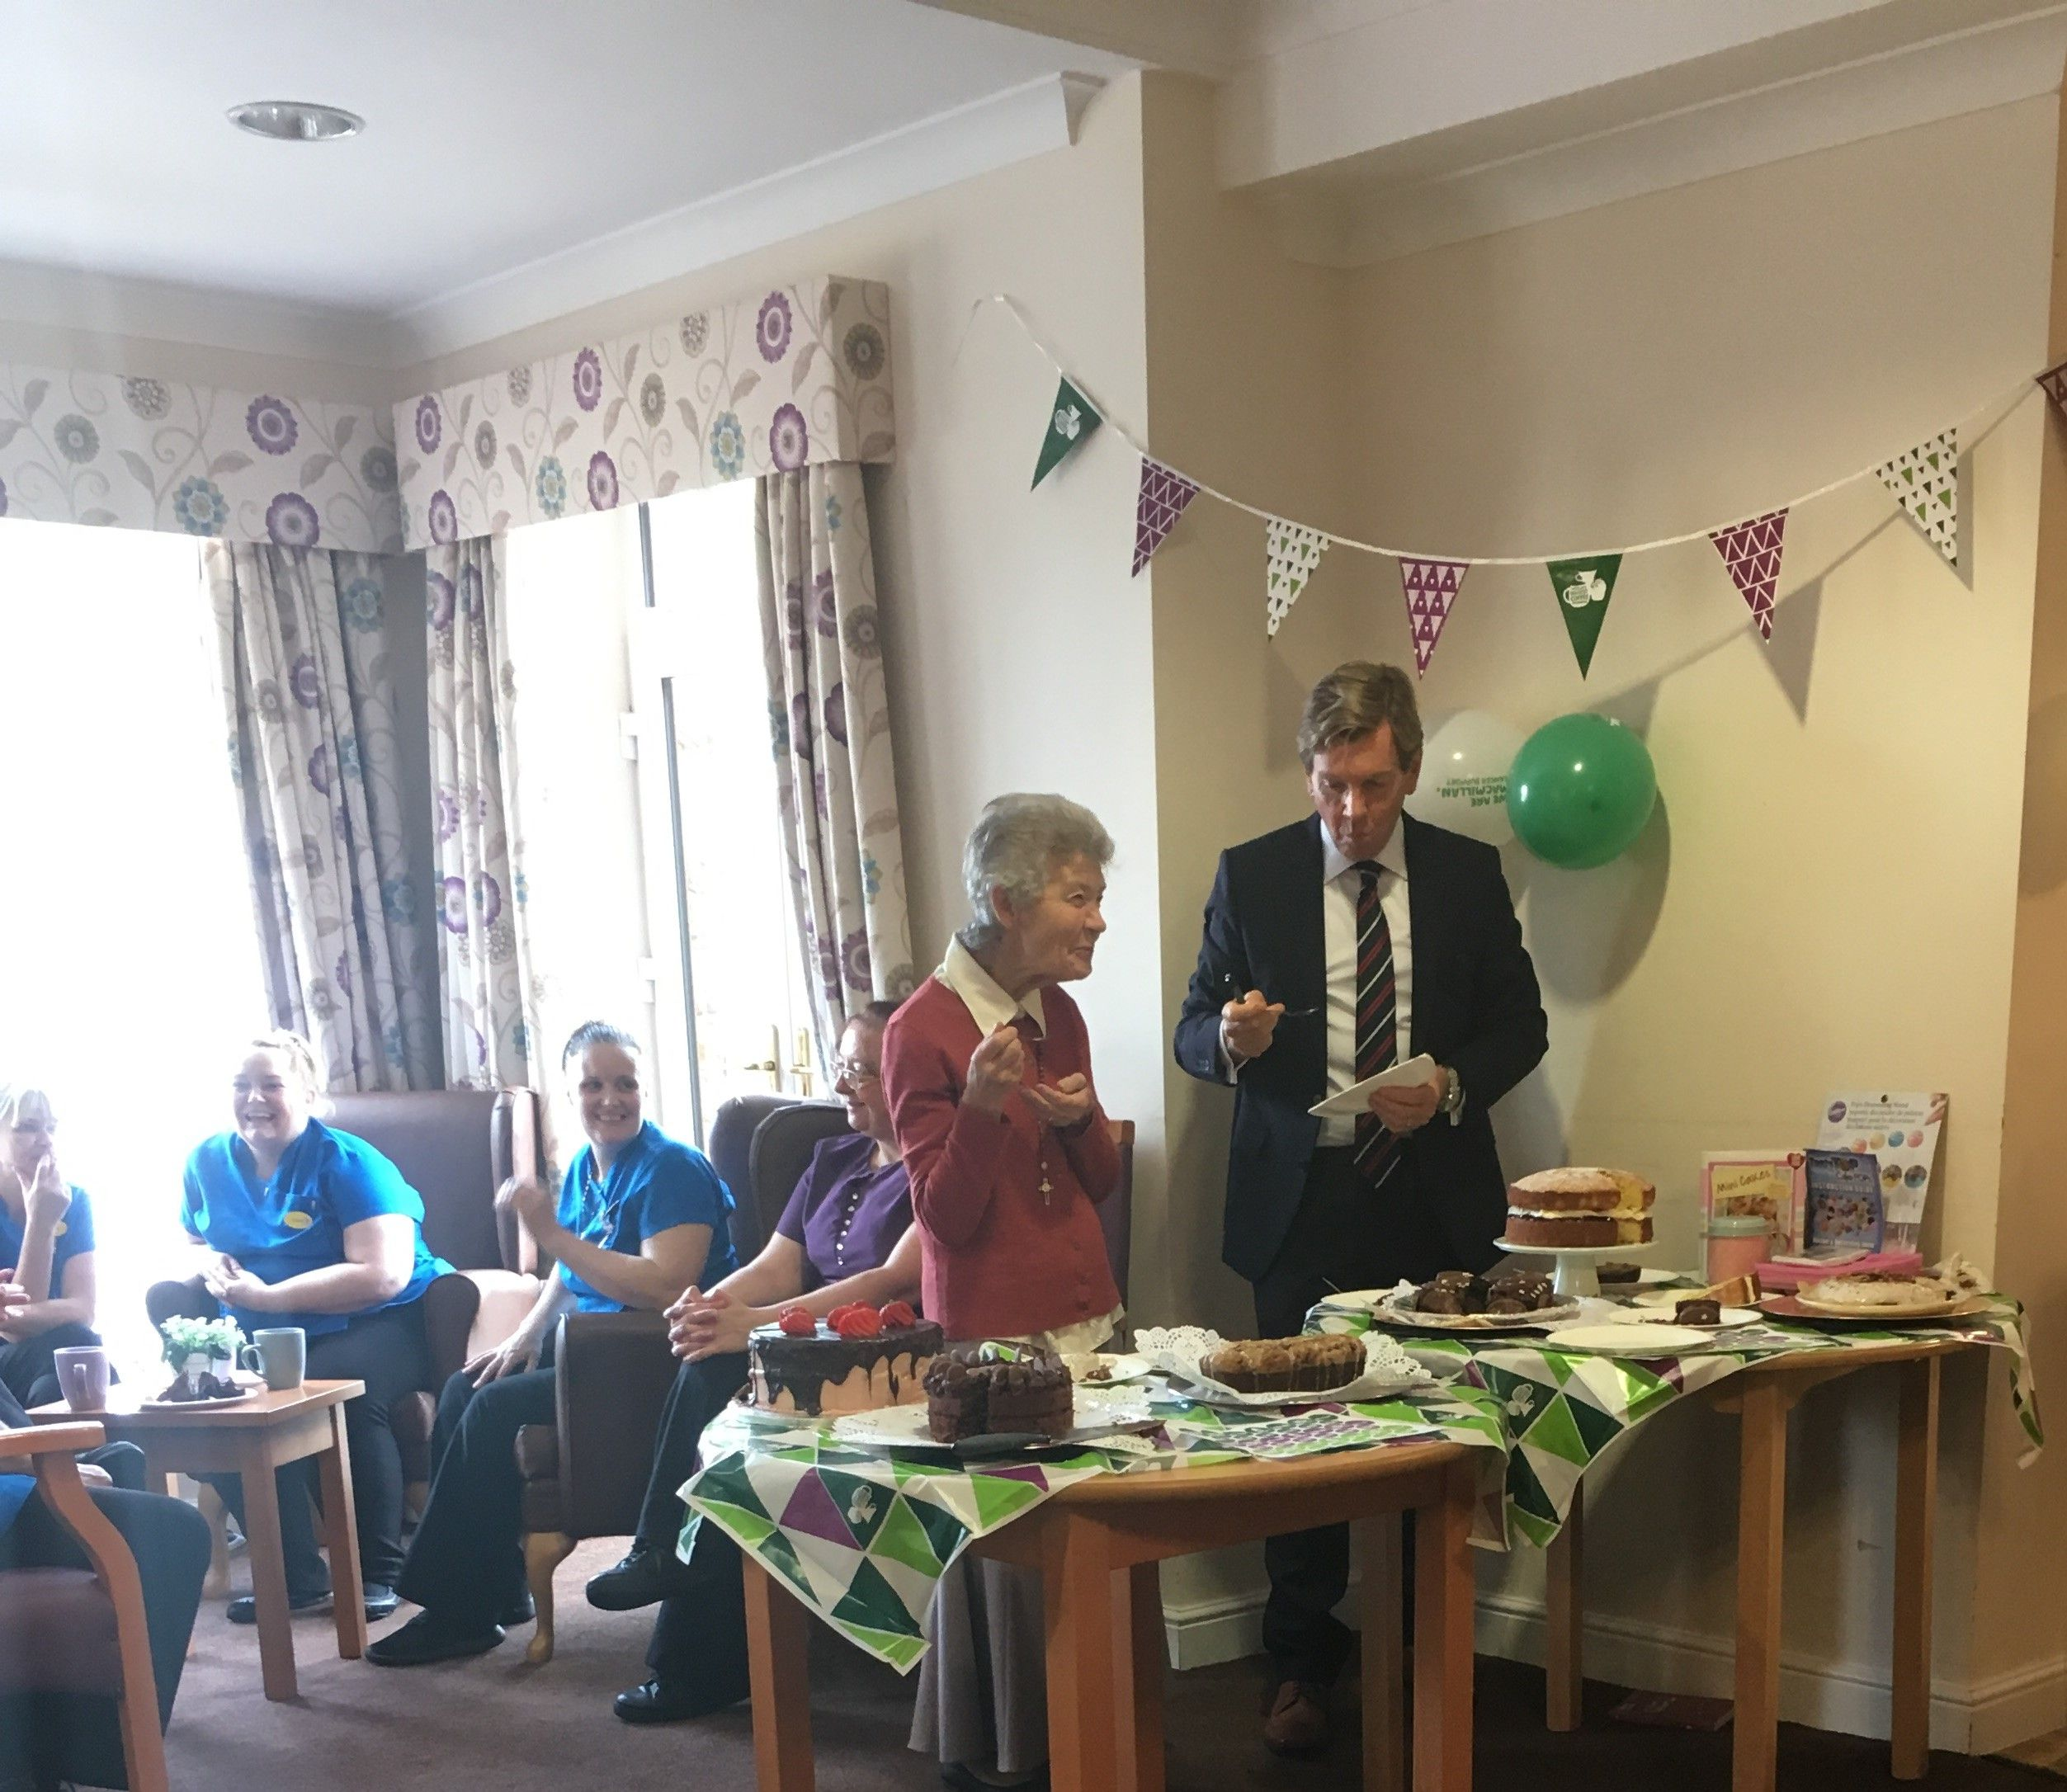 Charity bake-off at Springhill - Springhill Care Home